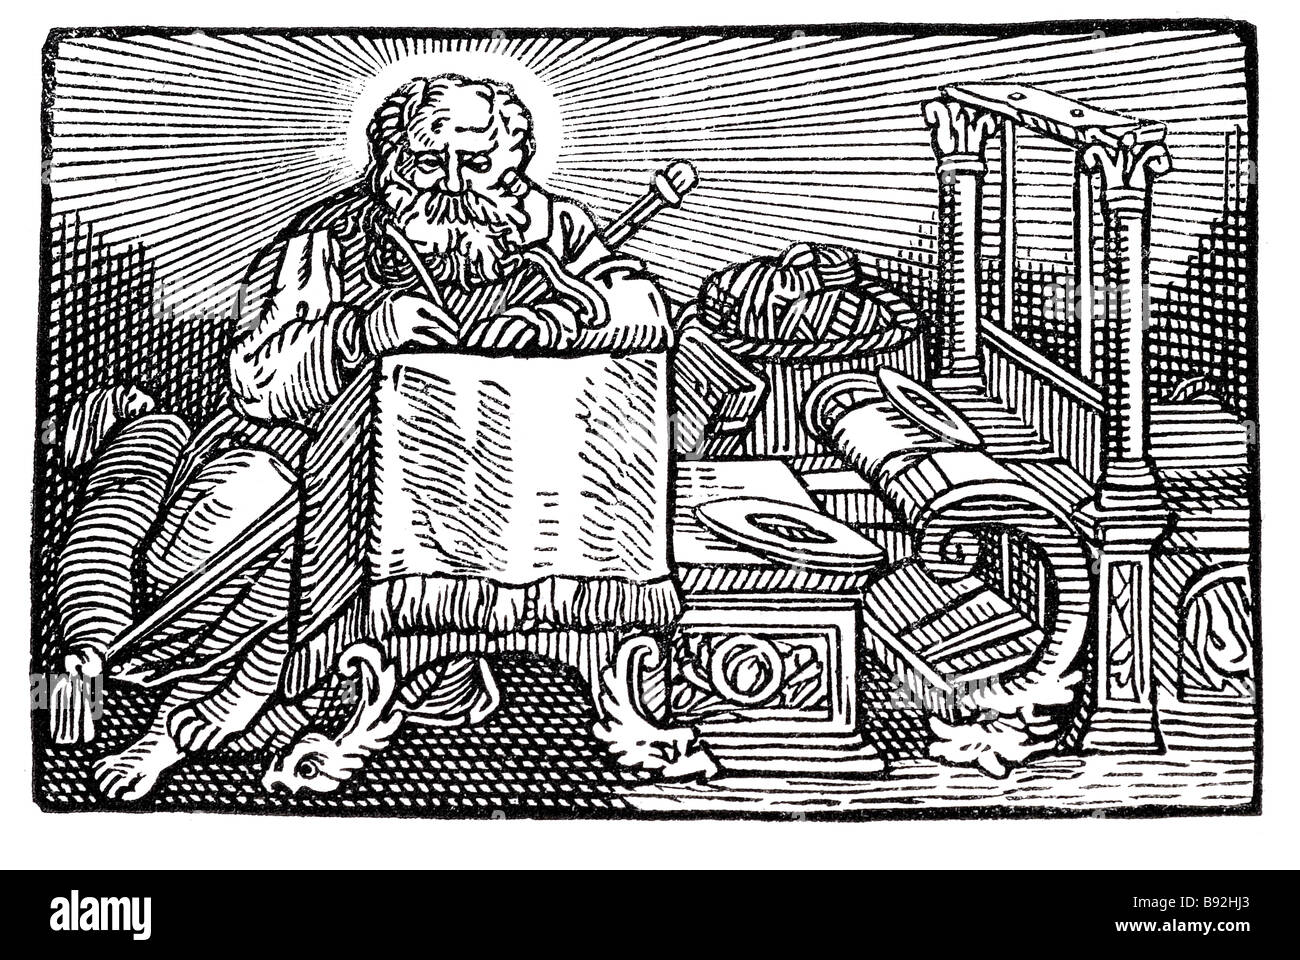 st. paul writing sword weaver loom saint wood cuts tent maker man working god religion Hans Holbein the Younger - Stock Image